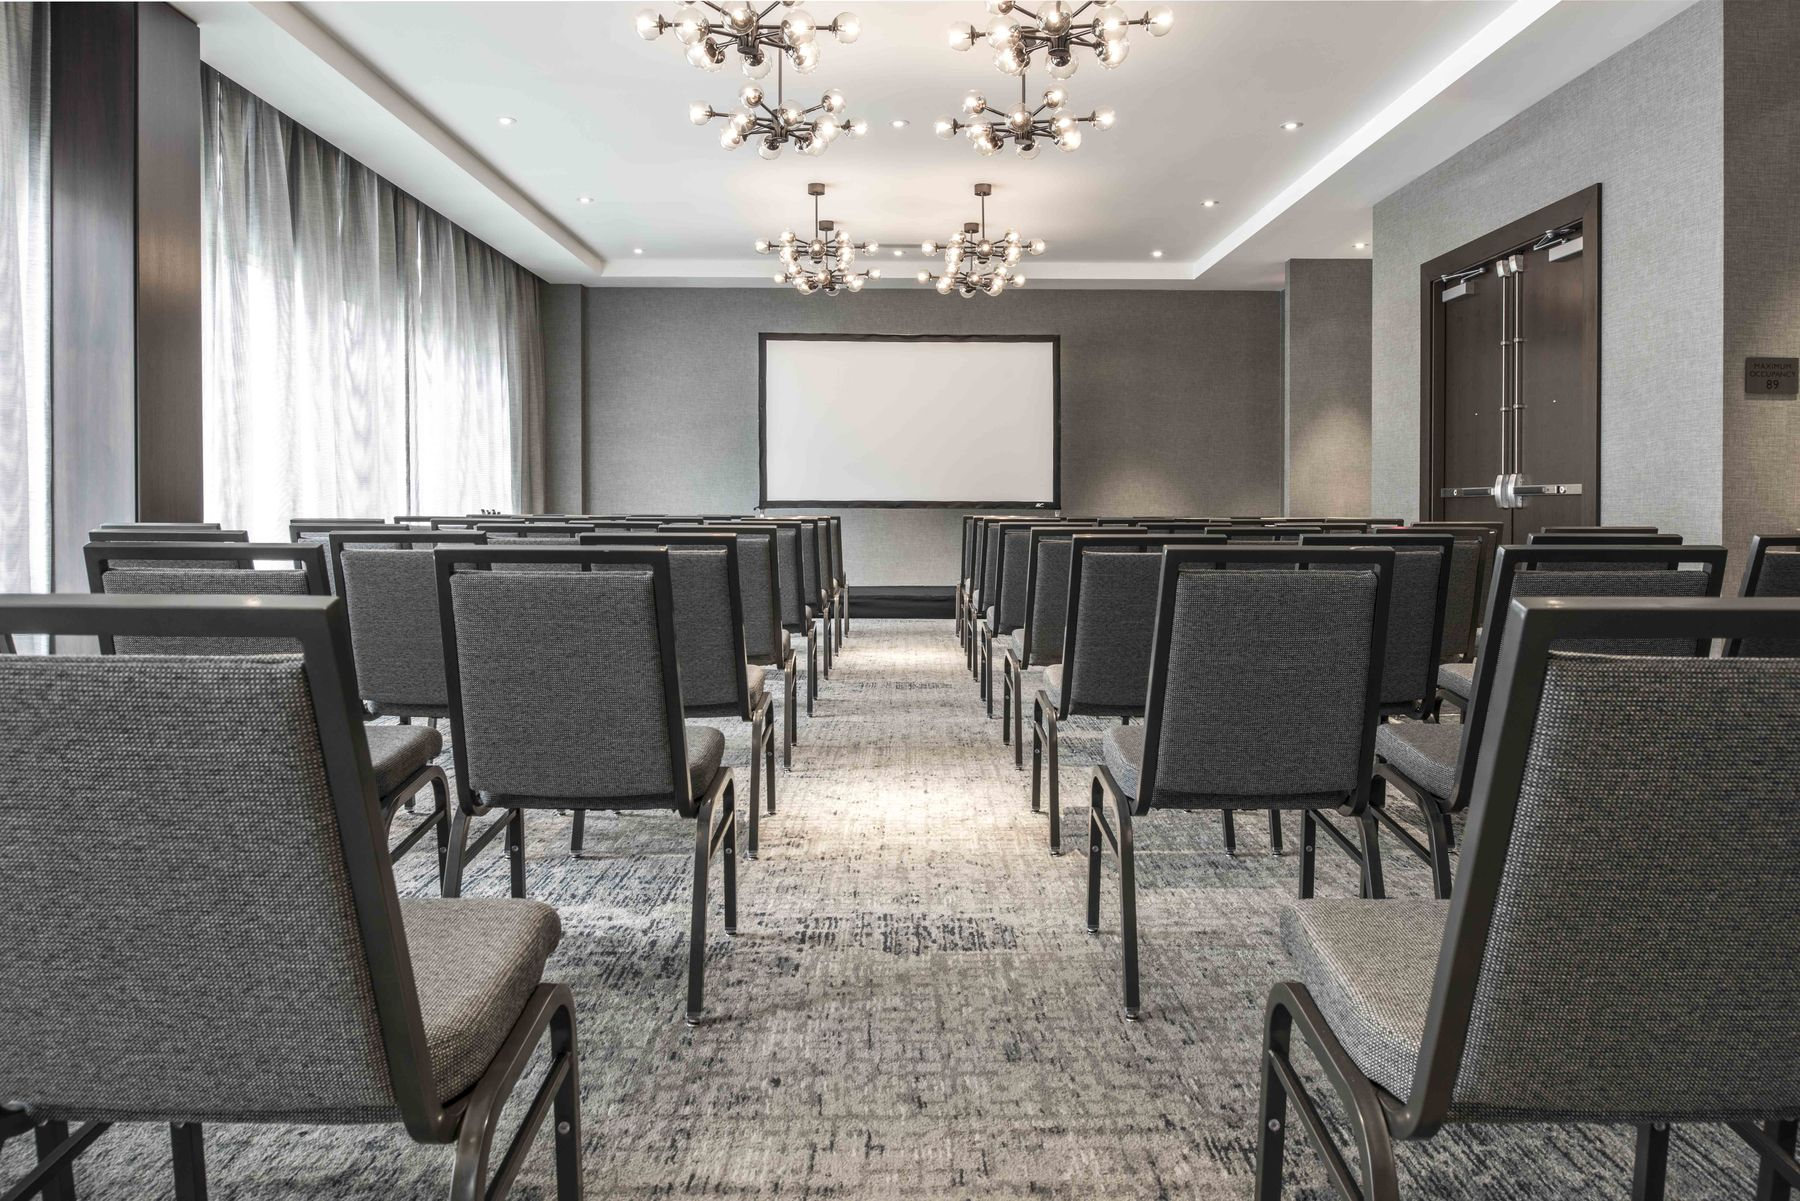 Meeting space set theater style with projector screen